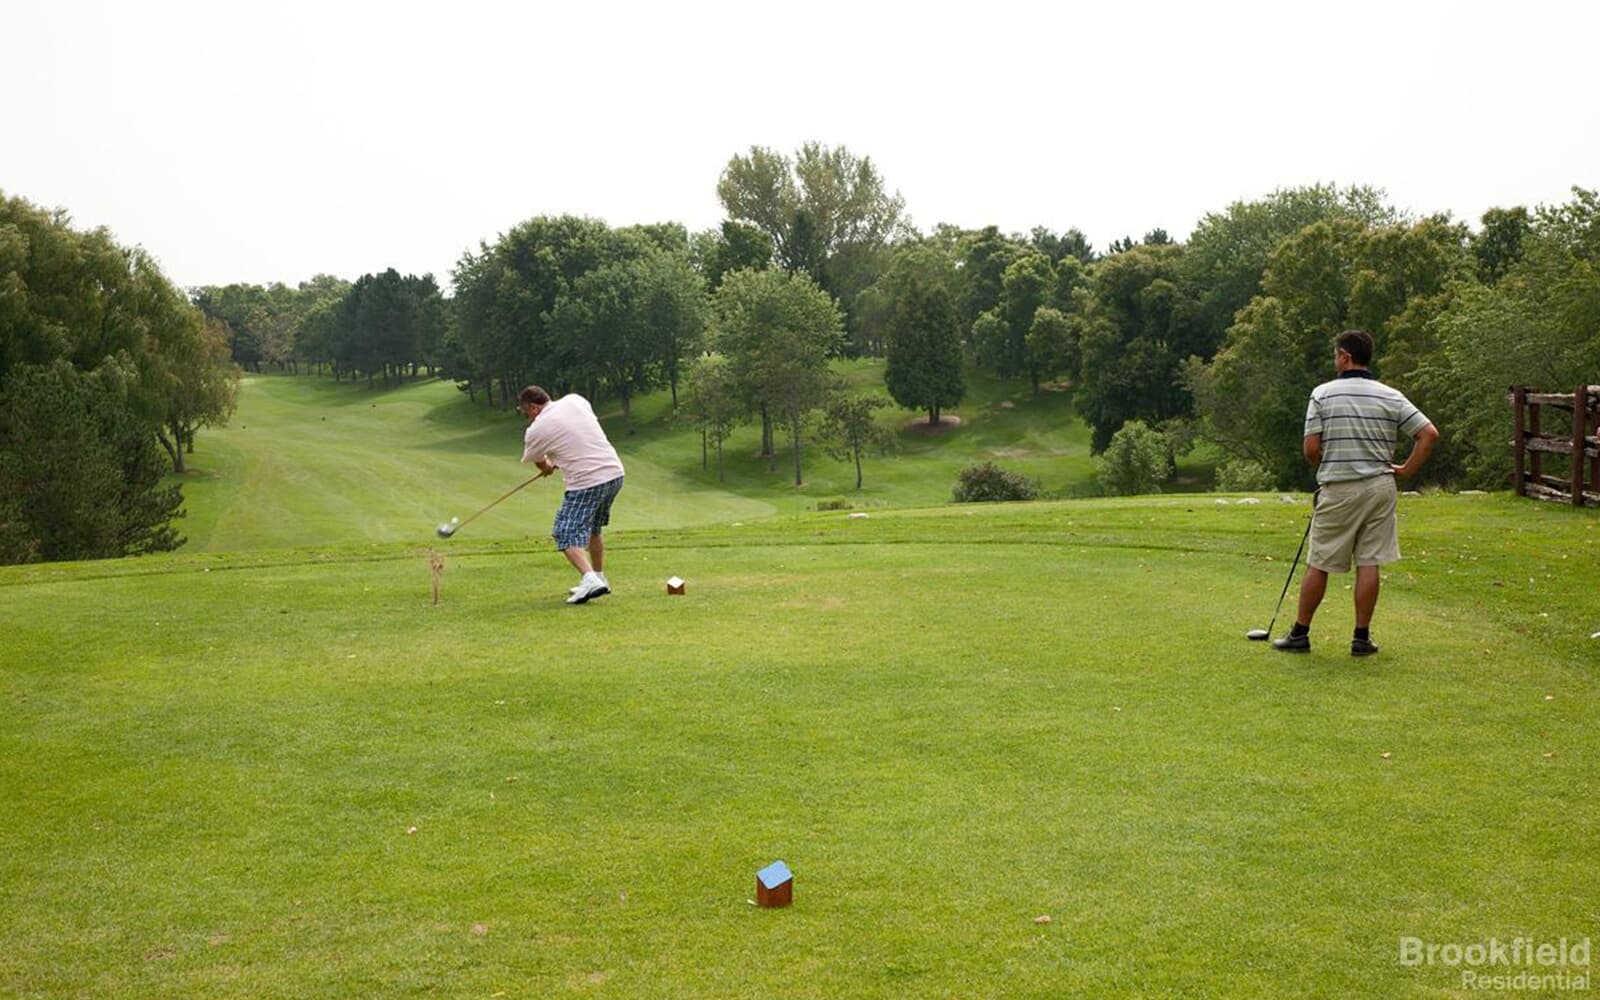 Golf range in Caledon East, ON